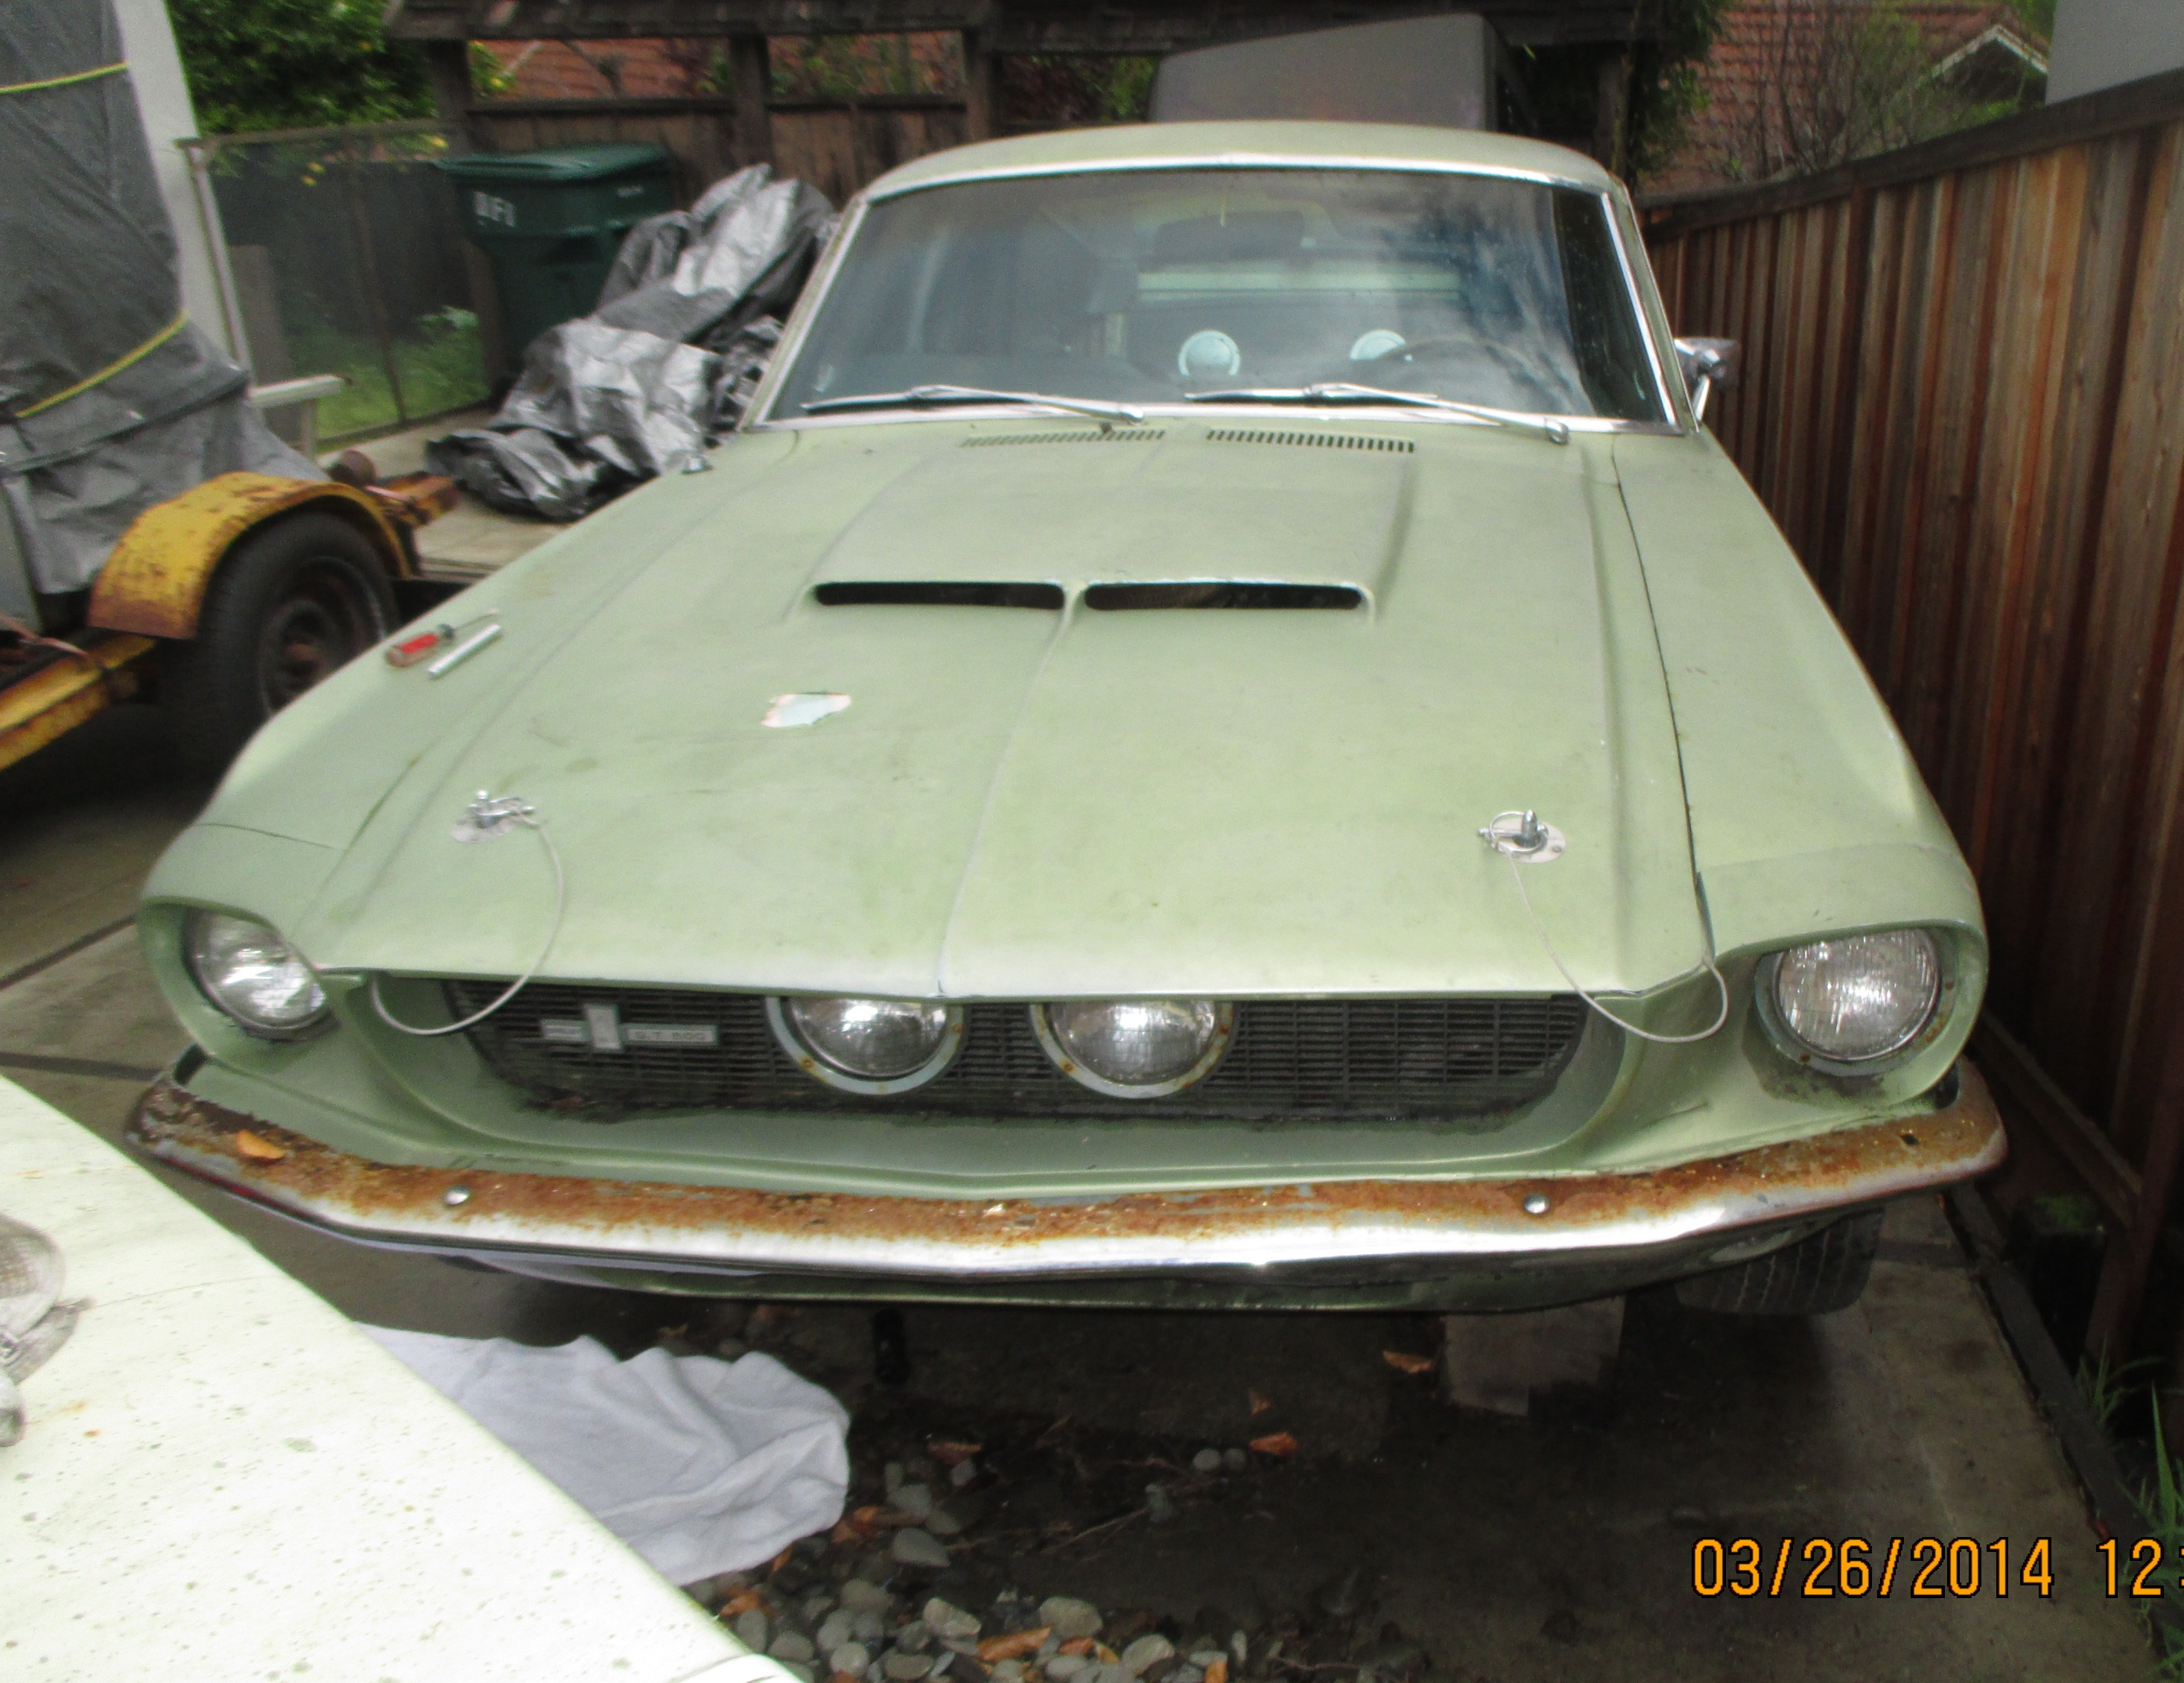 1967 Ford Shelby GT500 Mustang Full Owner History Barn Find Off Road Since 1969 Born With Drive Train Documented Very Low Mileage Restoration To OEM